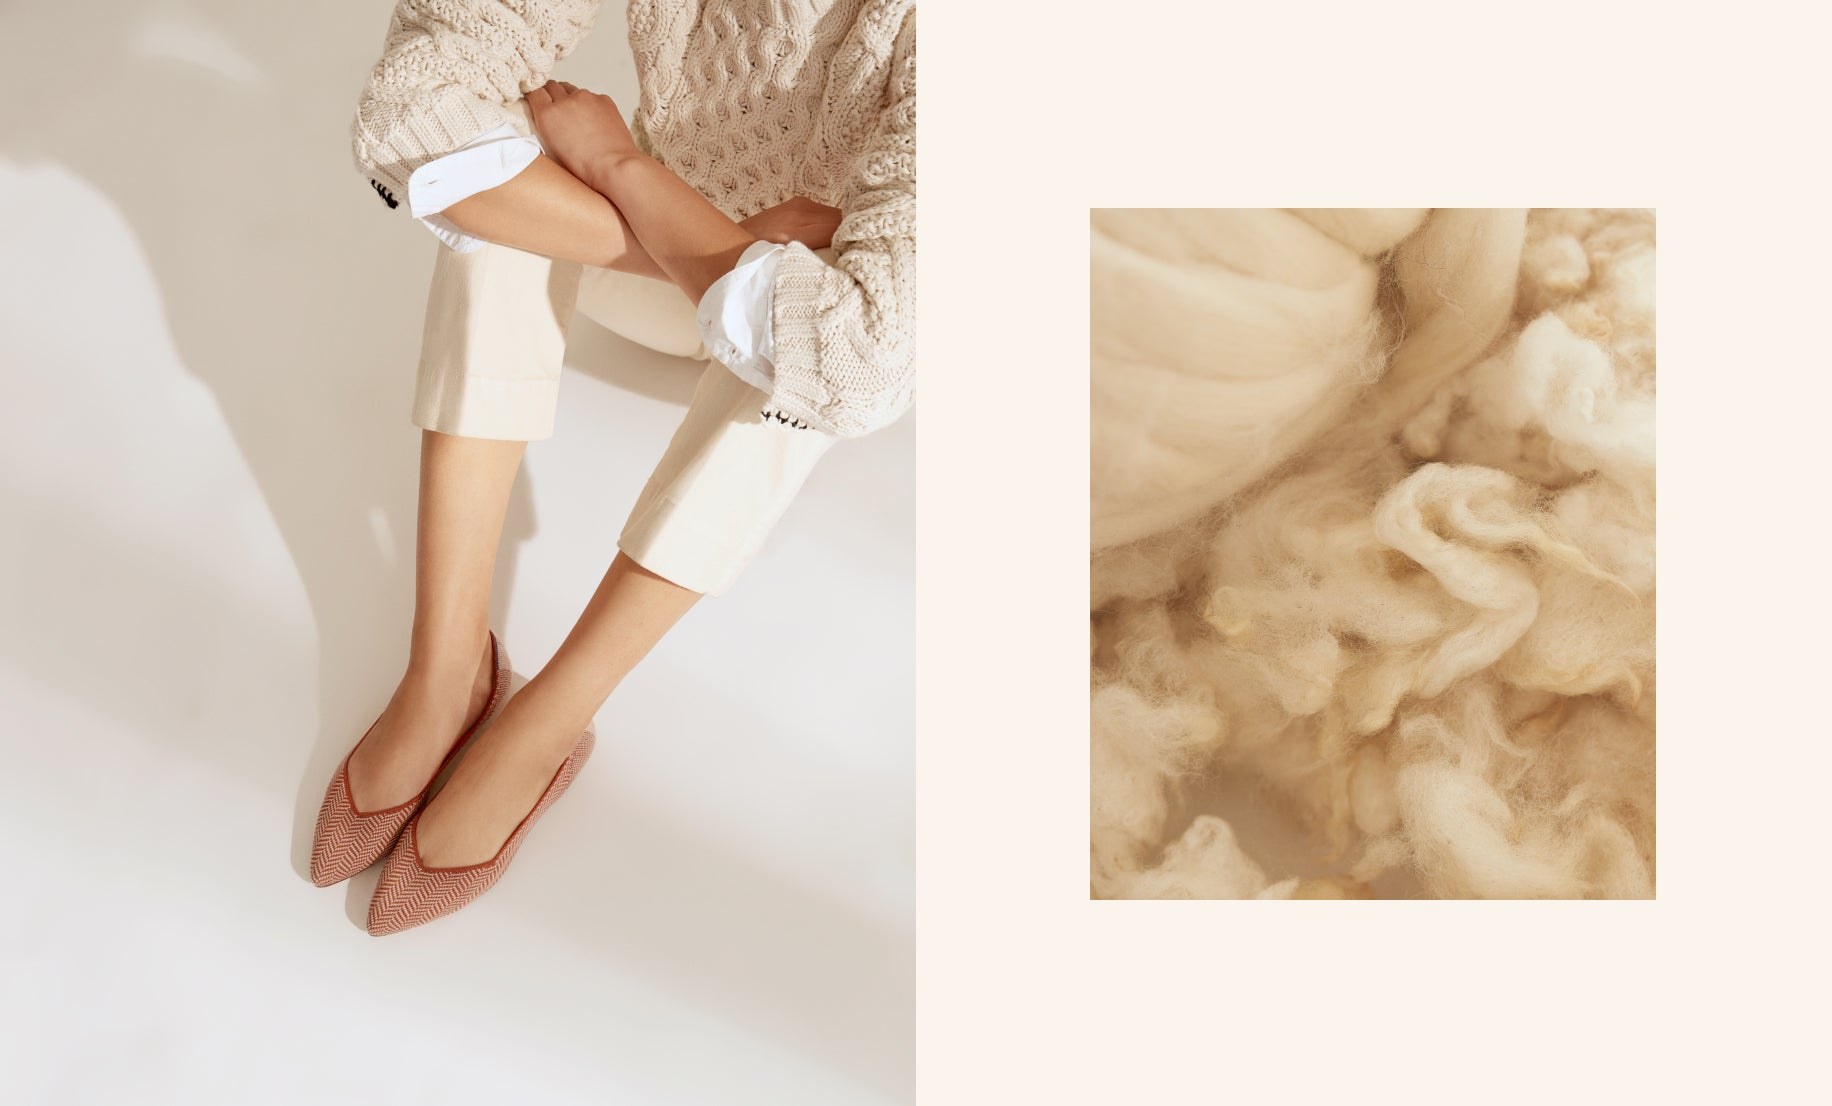 On the left, The Merino Point in Camel Herringbone shown on a model's feet. On the right, a ball of soft merino wool.